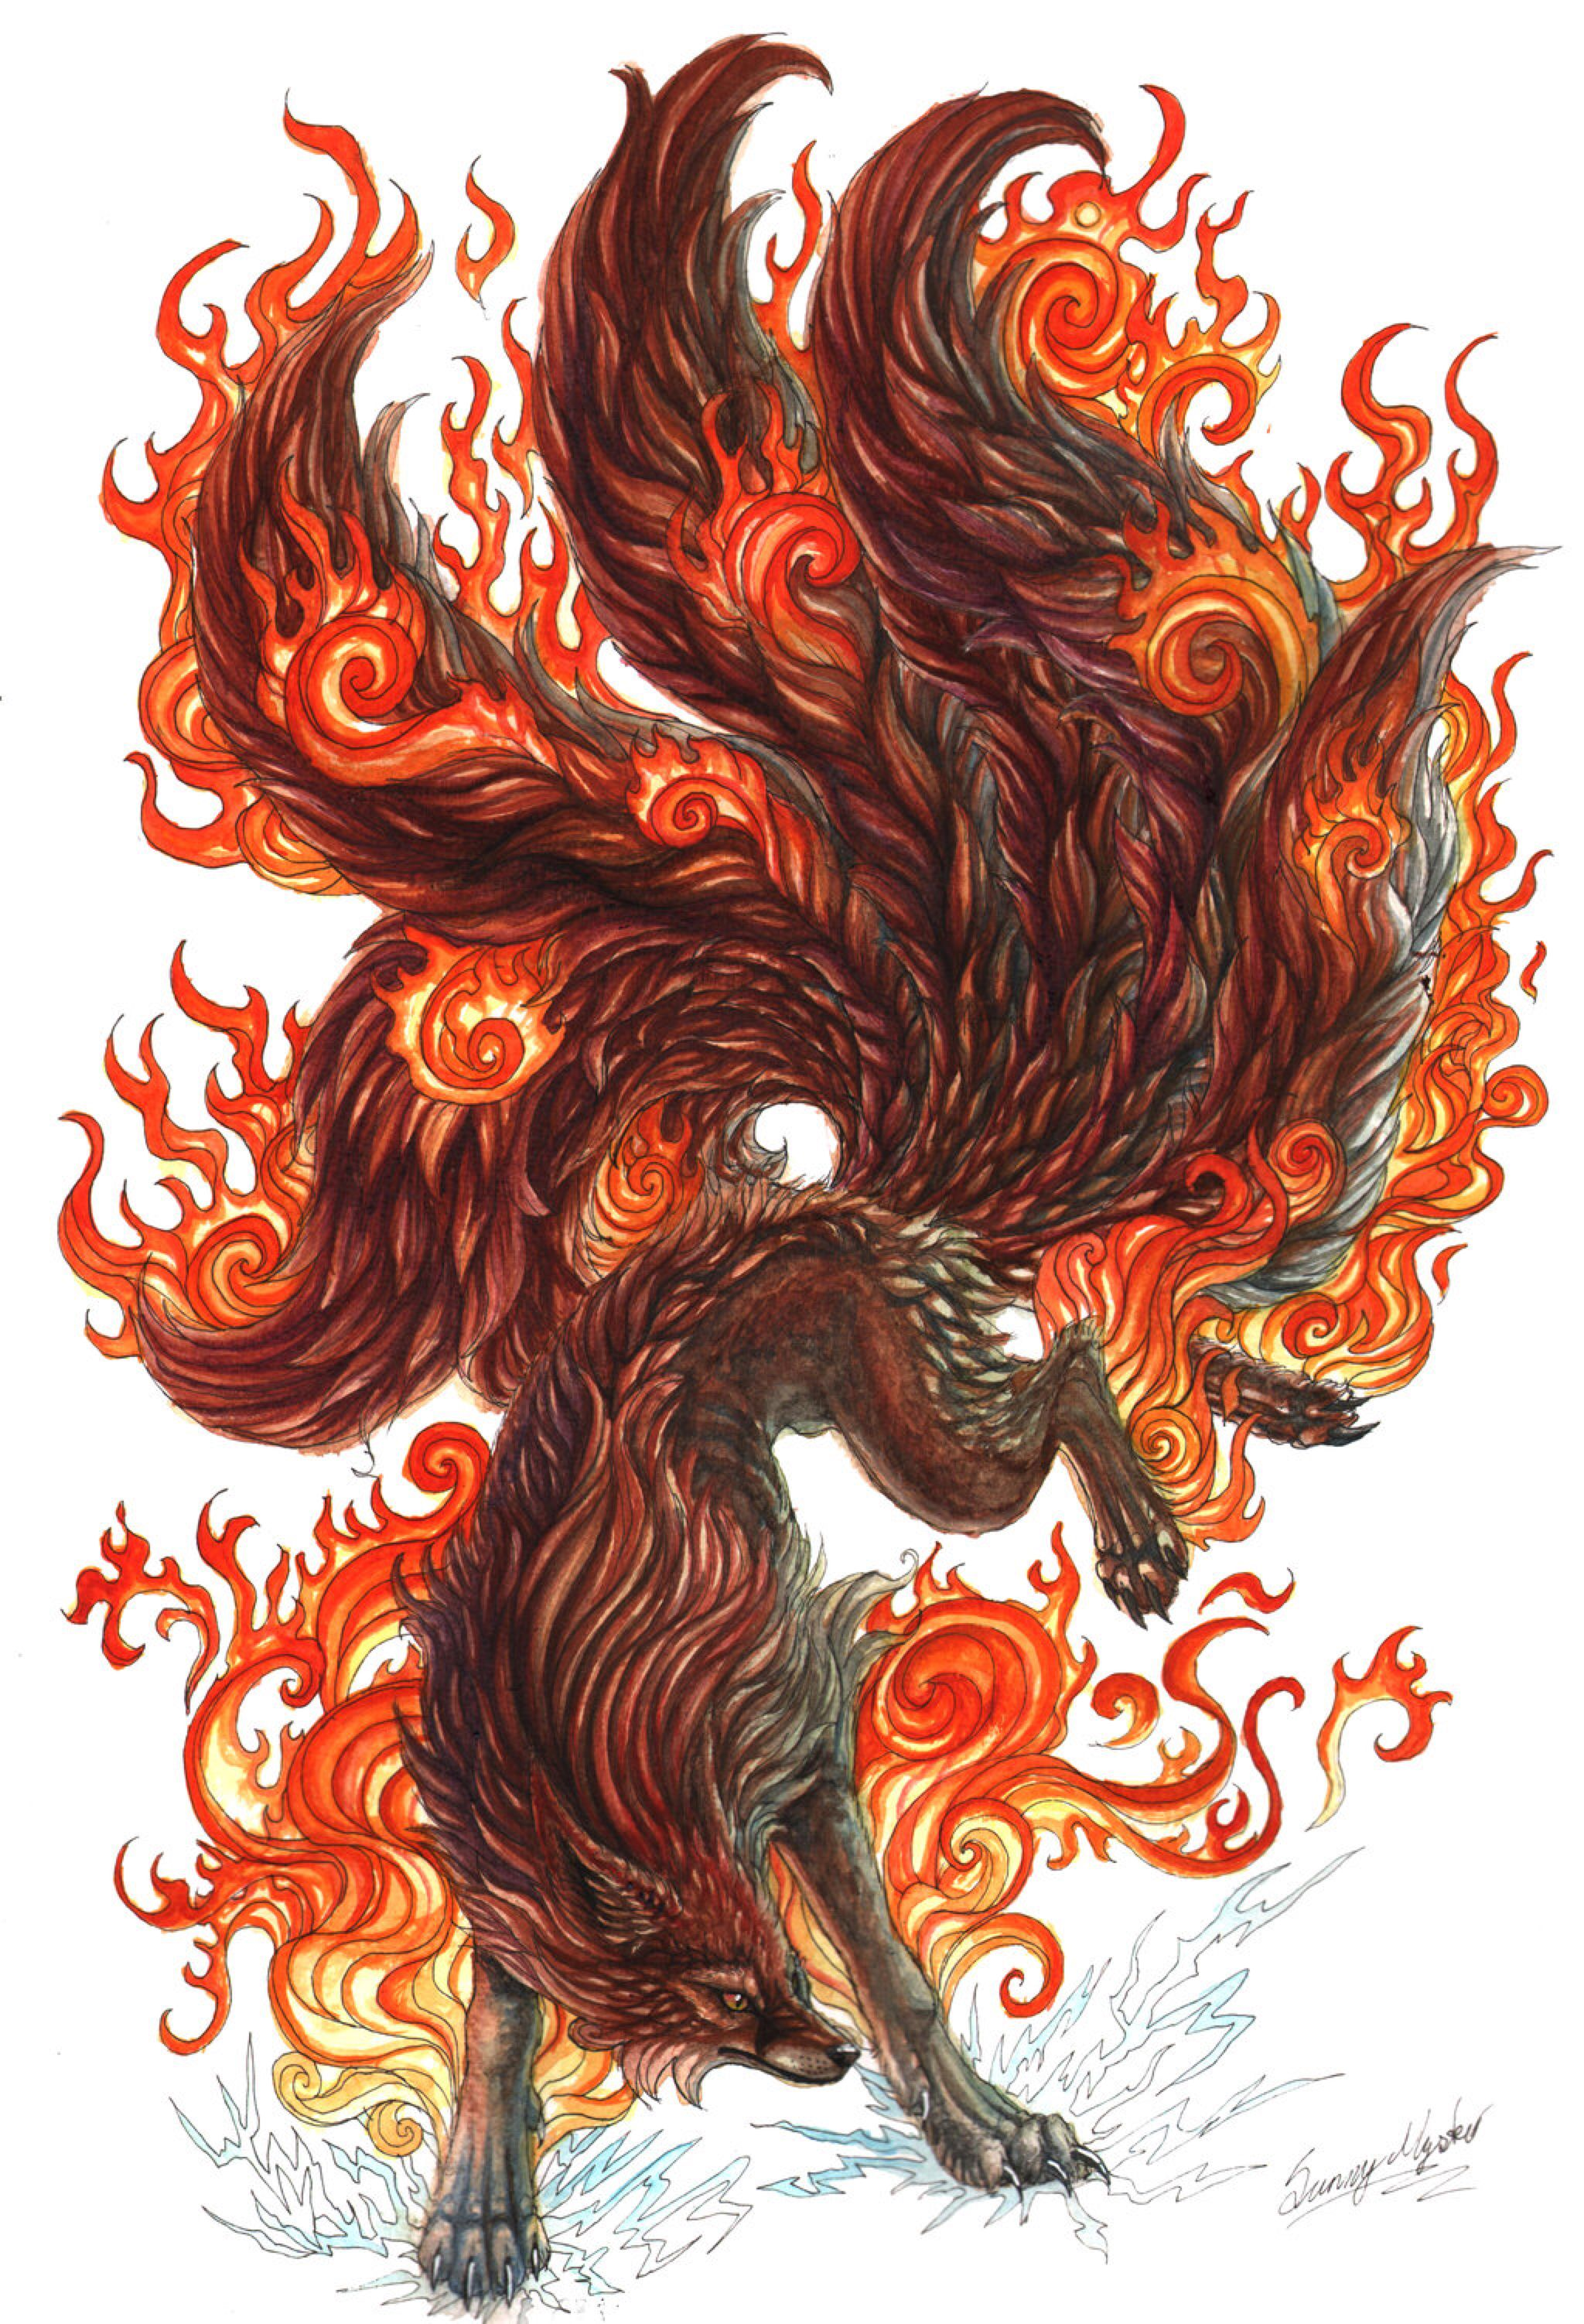 Kitsune by Sunima on DeviantArt. Kistune is the name of